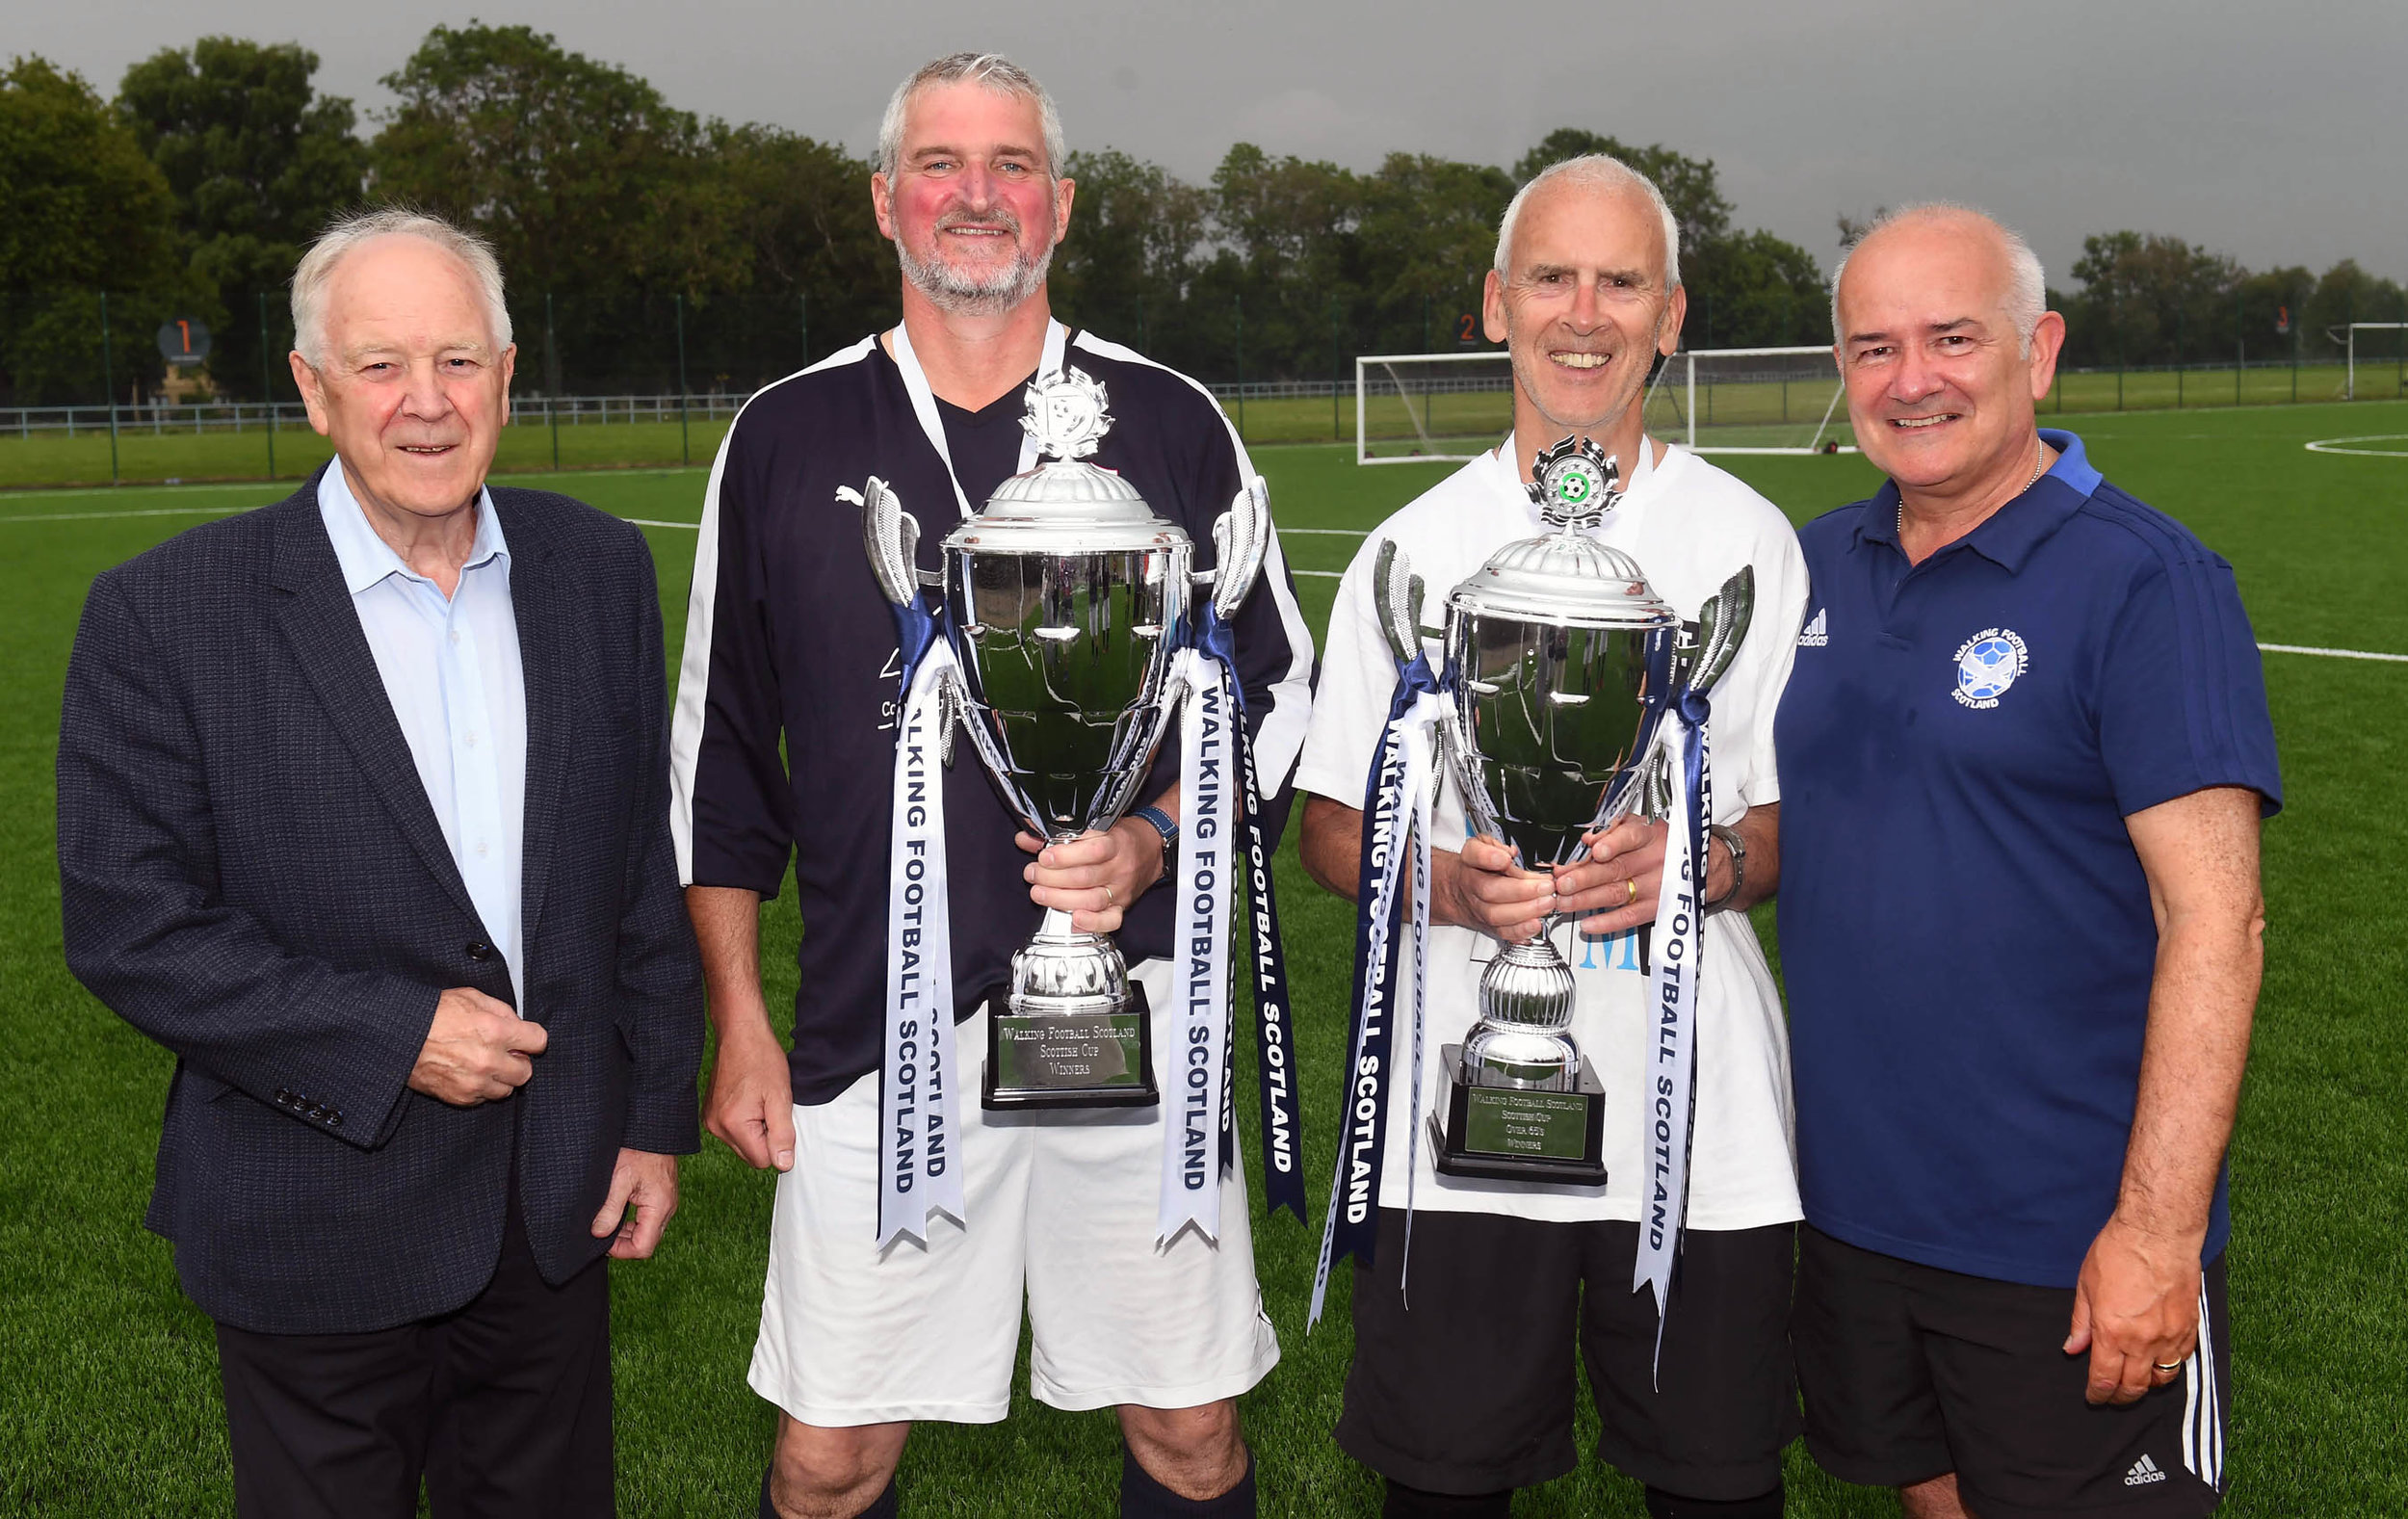 Presentation of the Walking Football Scotland Scottish Cups  l-r Craig Brown, Willie Carroll Raith Rovers, Bill McConnell Kirkcaldy and Gary McLaughlin WFS Chair